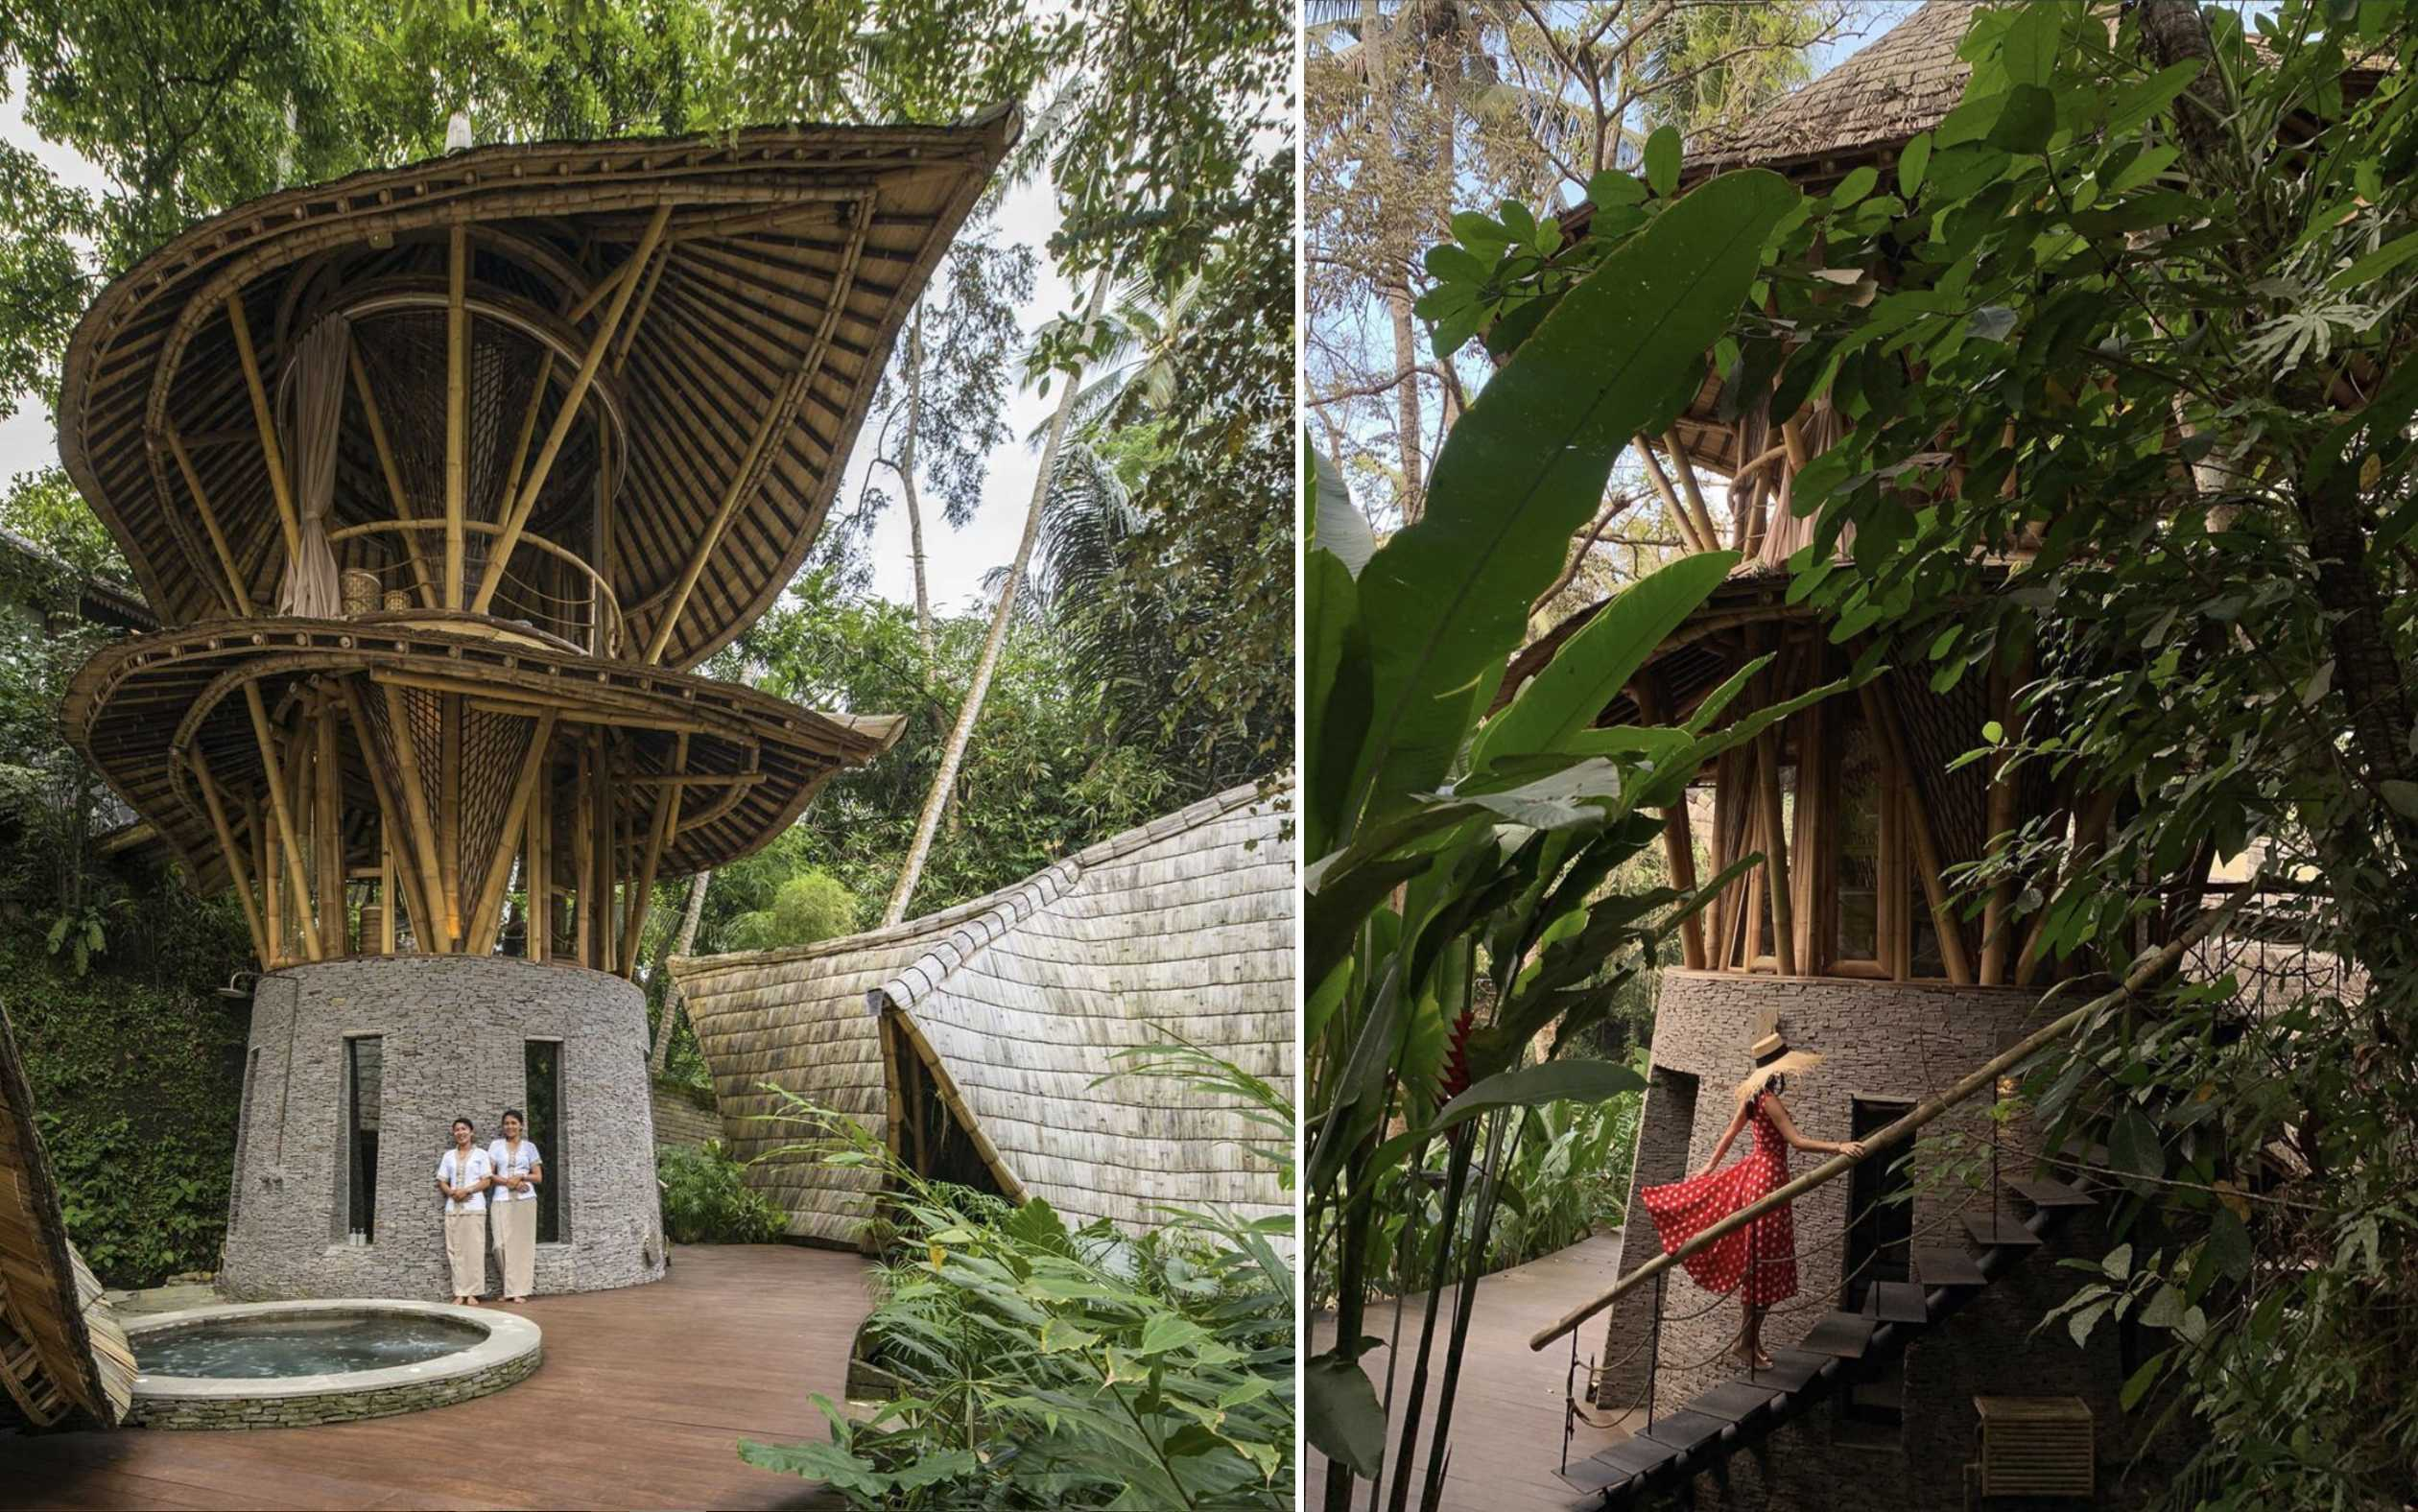 Agung Budi Raharsa | Architecture & Engineering Permata Ayung Bamboo Spa & Wellness Center - Bali Ubud, Kecamatan Ubud, Kabupaten Gianyar, Bali, Indonesia Ubud, Kecamatan Ubud, Kabupaten Gianyar, Bali, Indonesia Agung-Budi-Raharsa-Permata-Ayung-Bamboo-Spa-Wellness-Center   88574